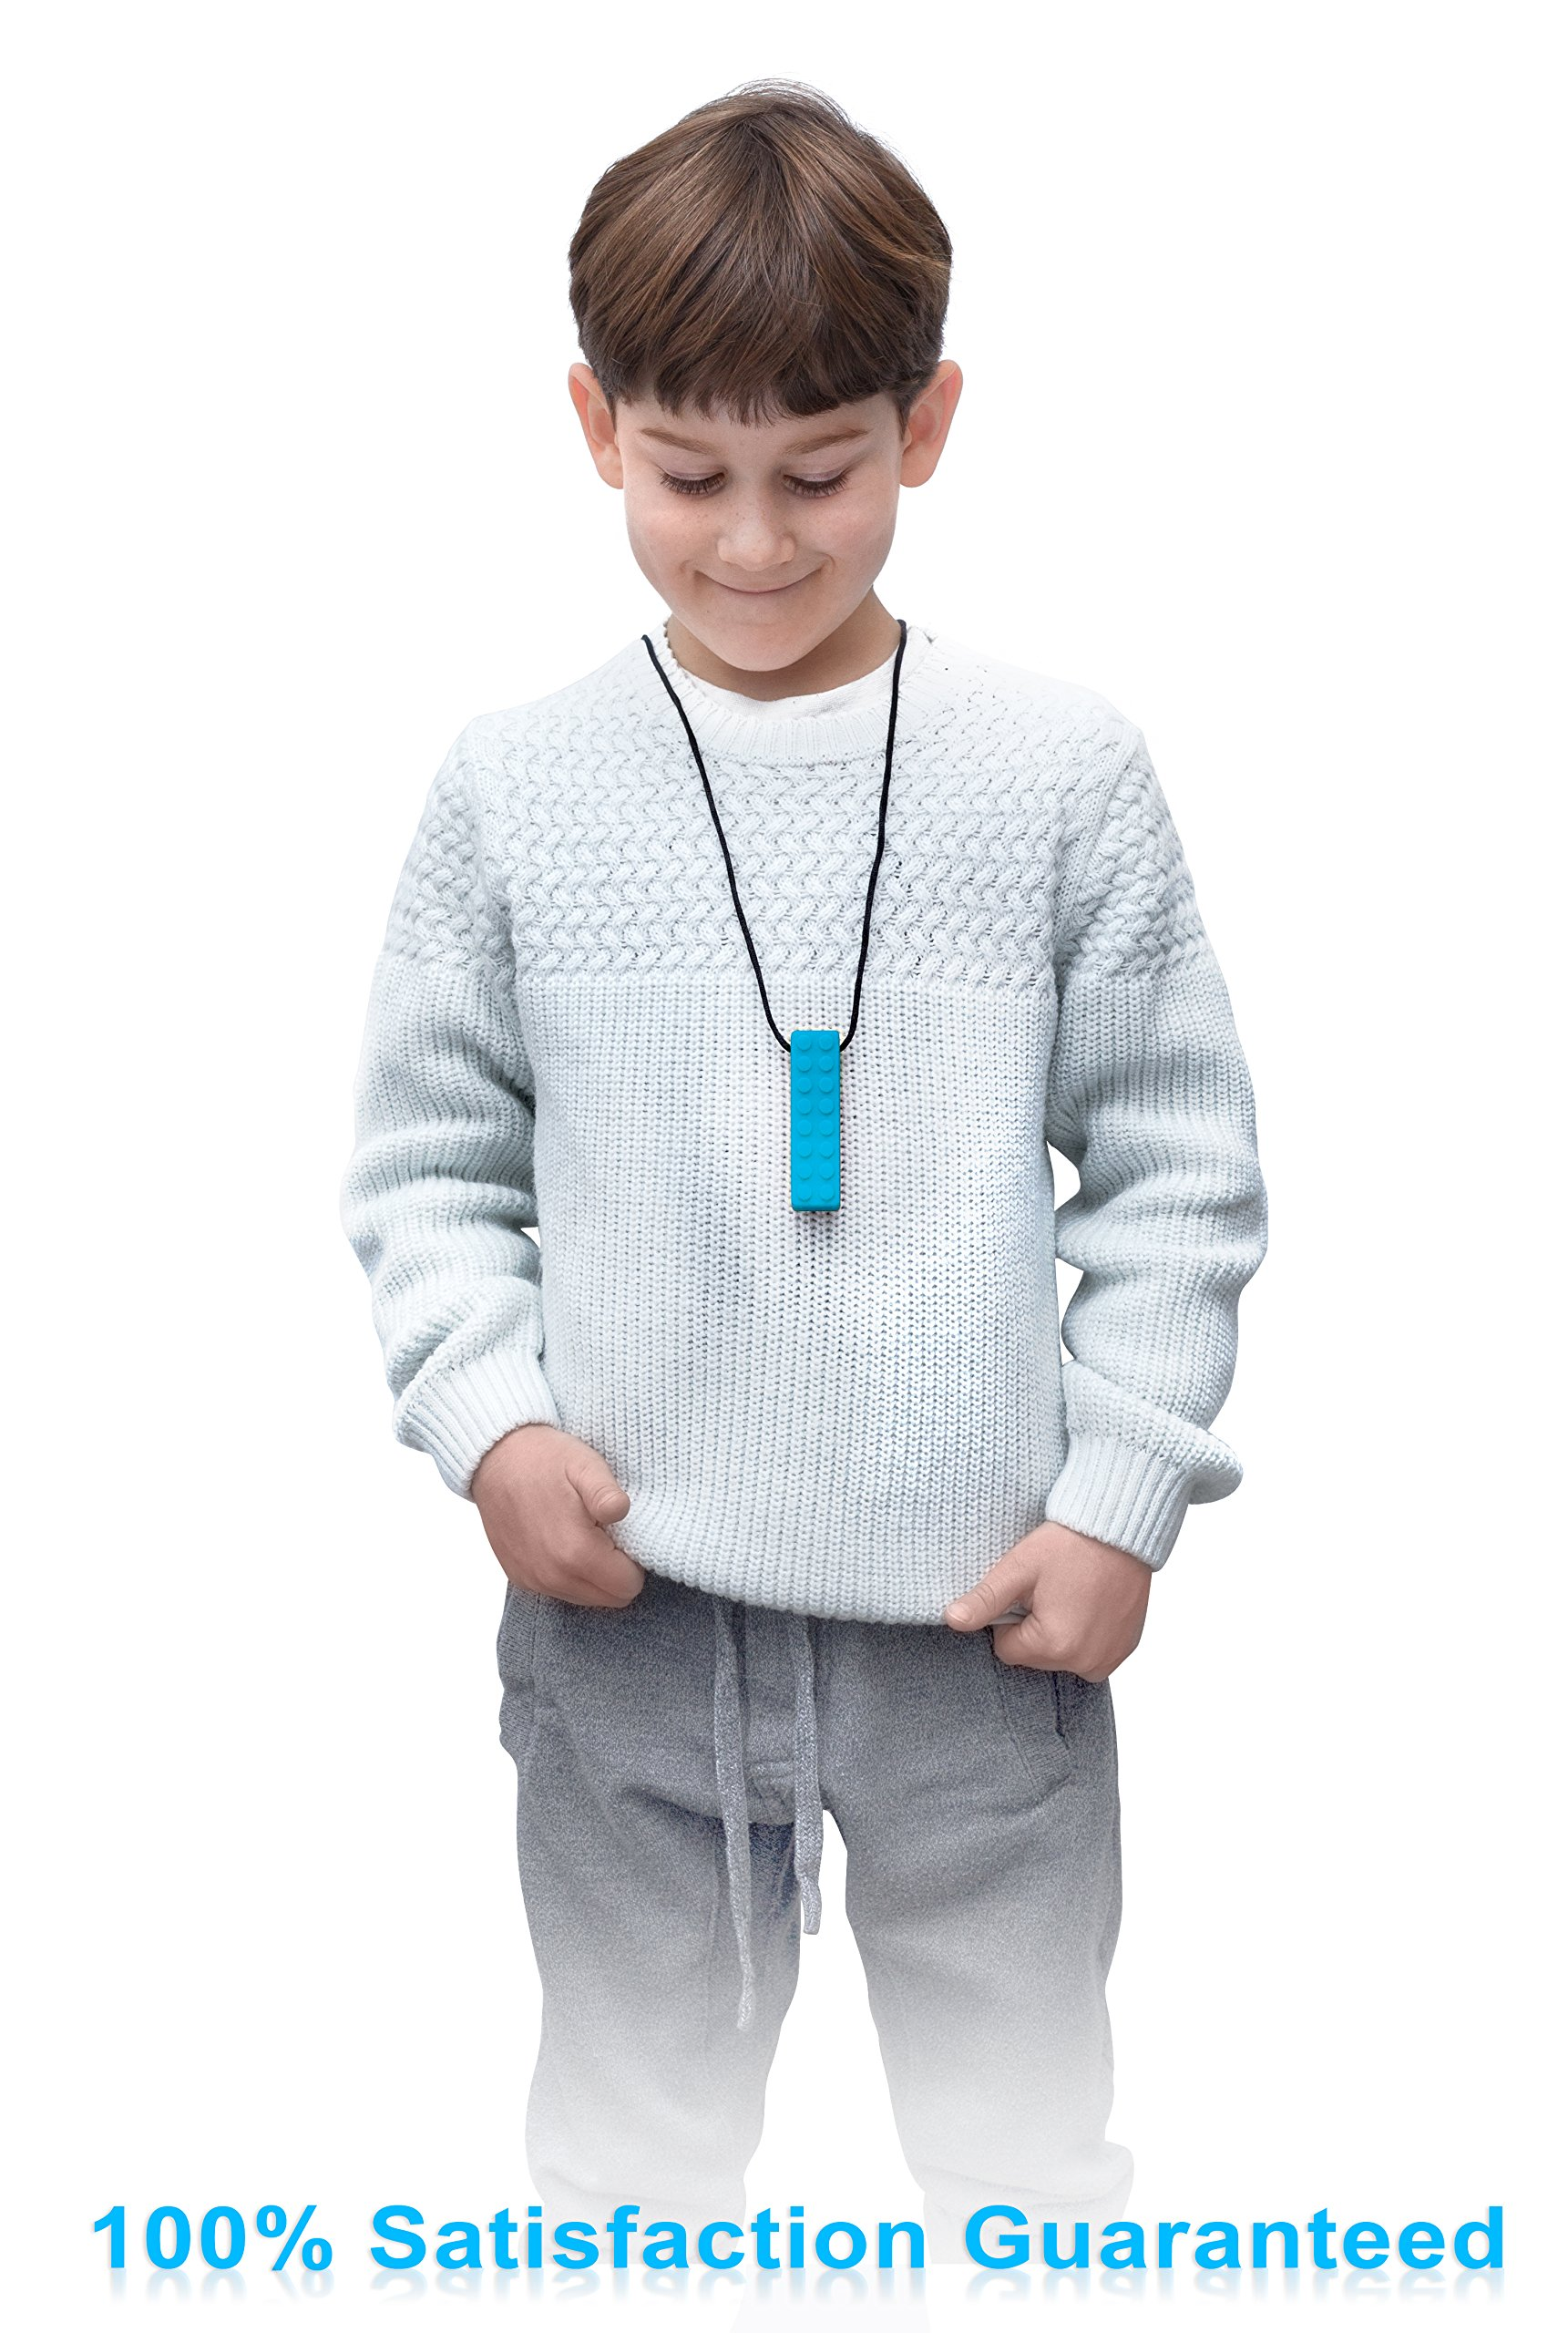 Sensory Necklace (2 PACK + FREE PENCIL TOPPER) - Chewy Necklace - Sensory Chewelry for Kids with Autism ADHD Biting Needs - Chew Toy for Boys and Girls - MORE FIRM by Optimum (Image #5)